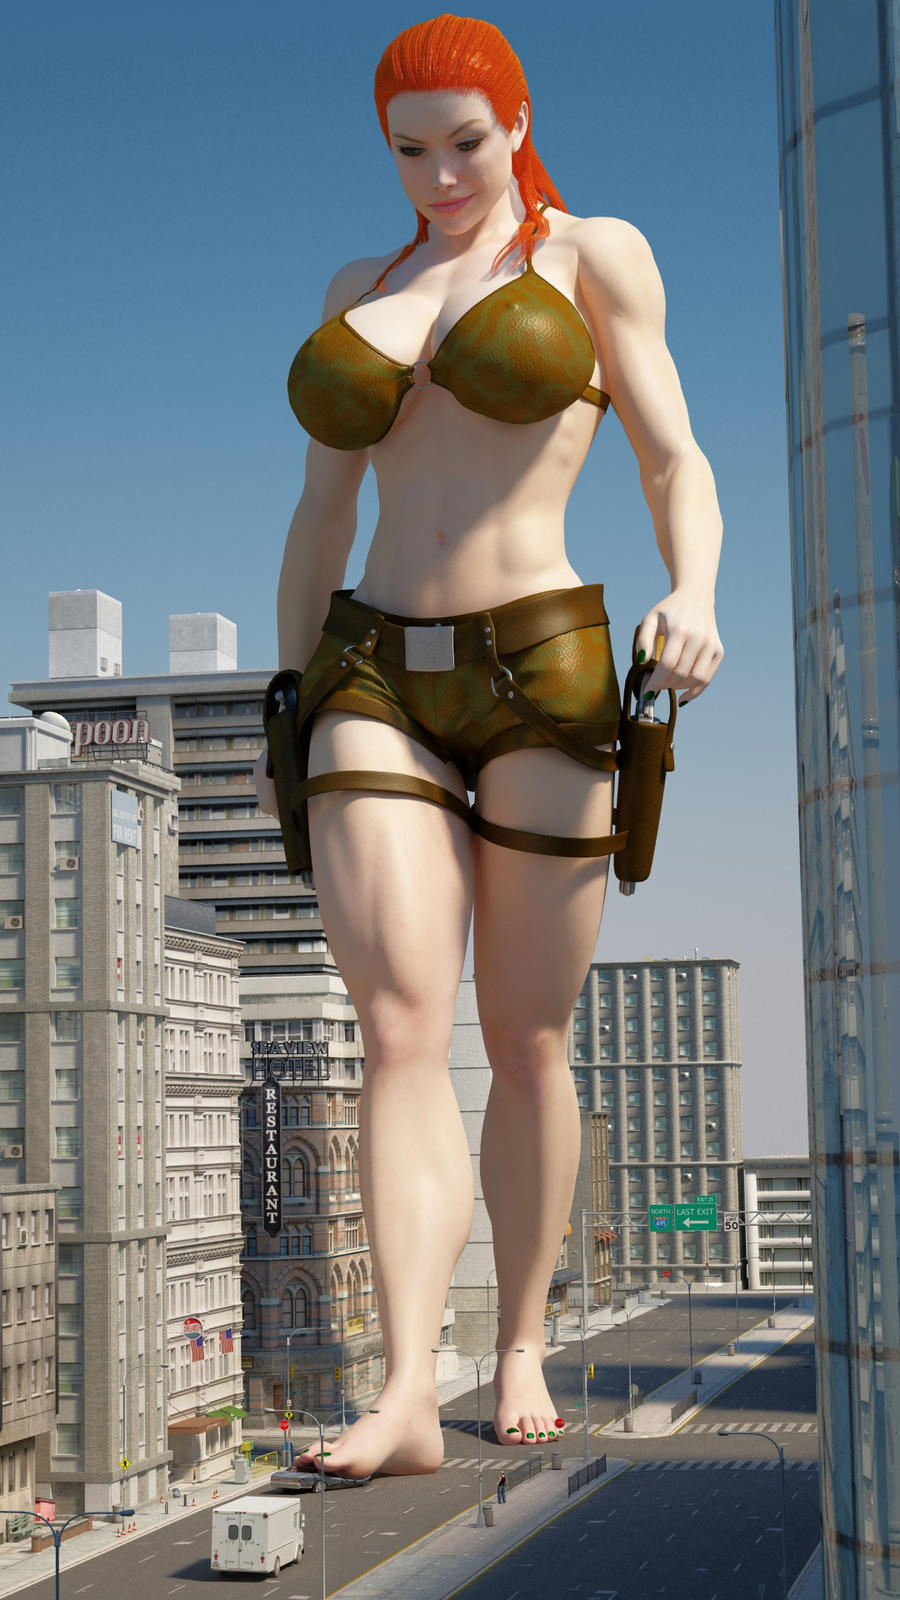 Hot giantess tall sexy picture